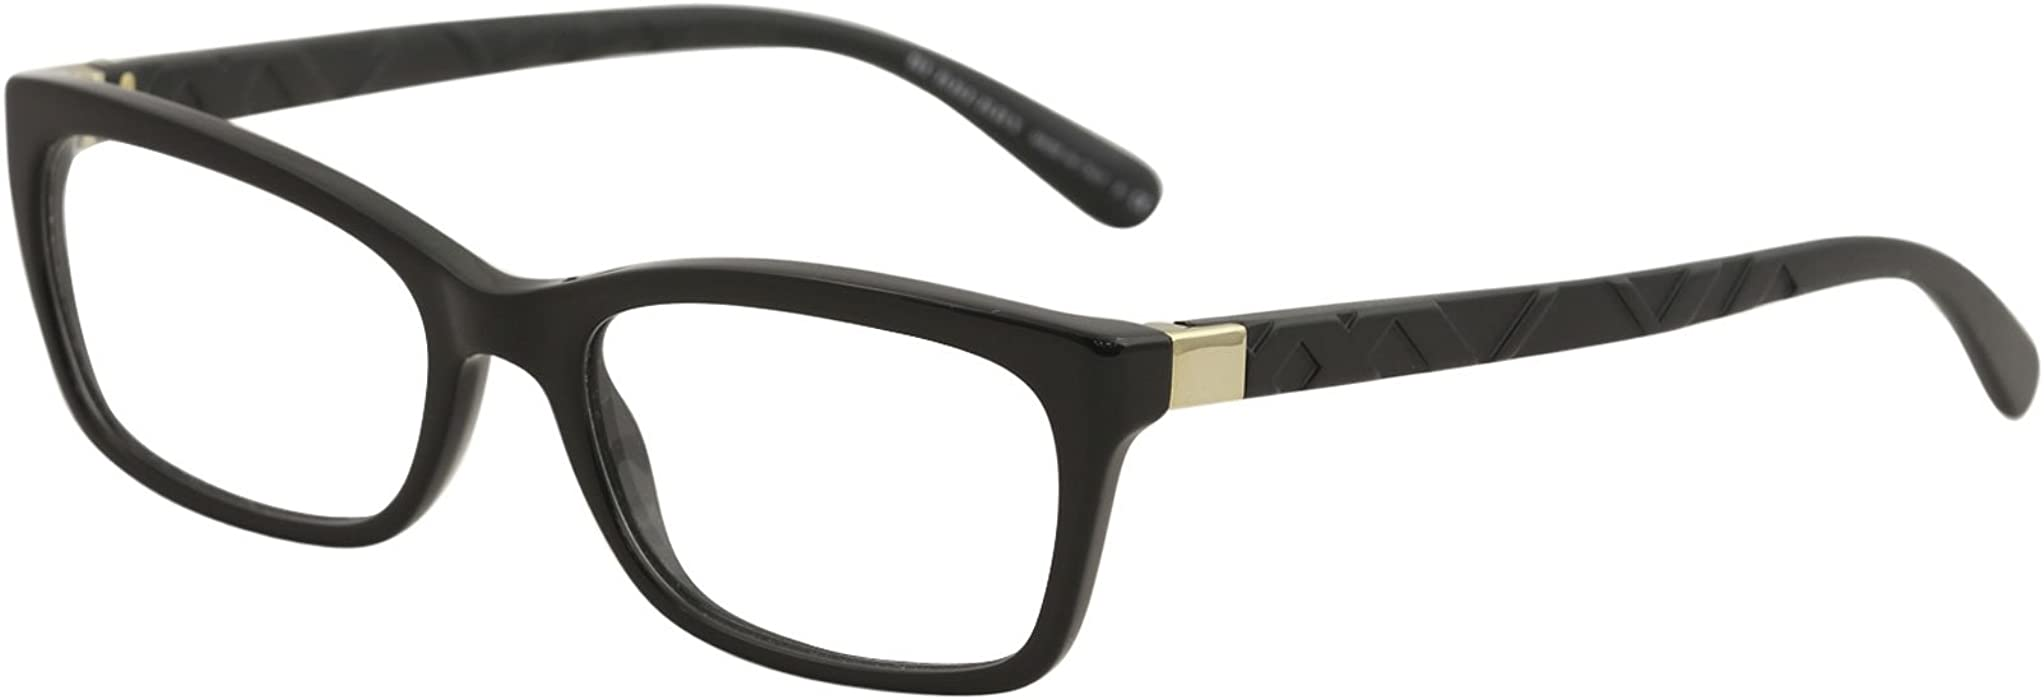 c6bb0ab6a6 BURBERRY Eyeglasses BE 2220 3001 Black 54MM at Amazon Women s ...